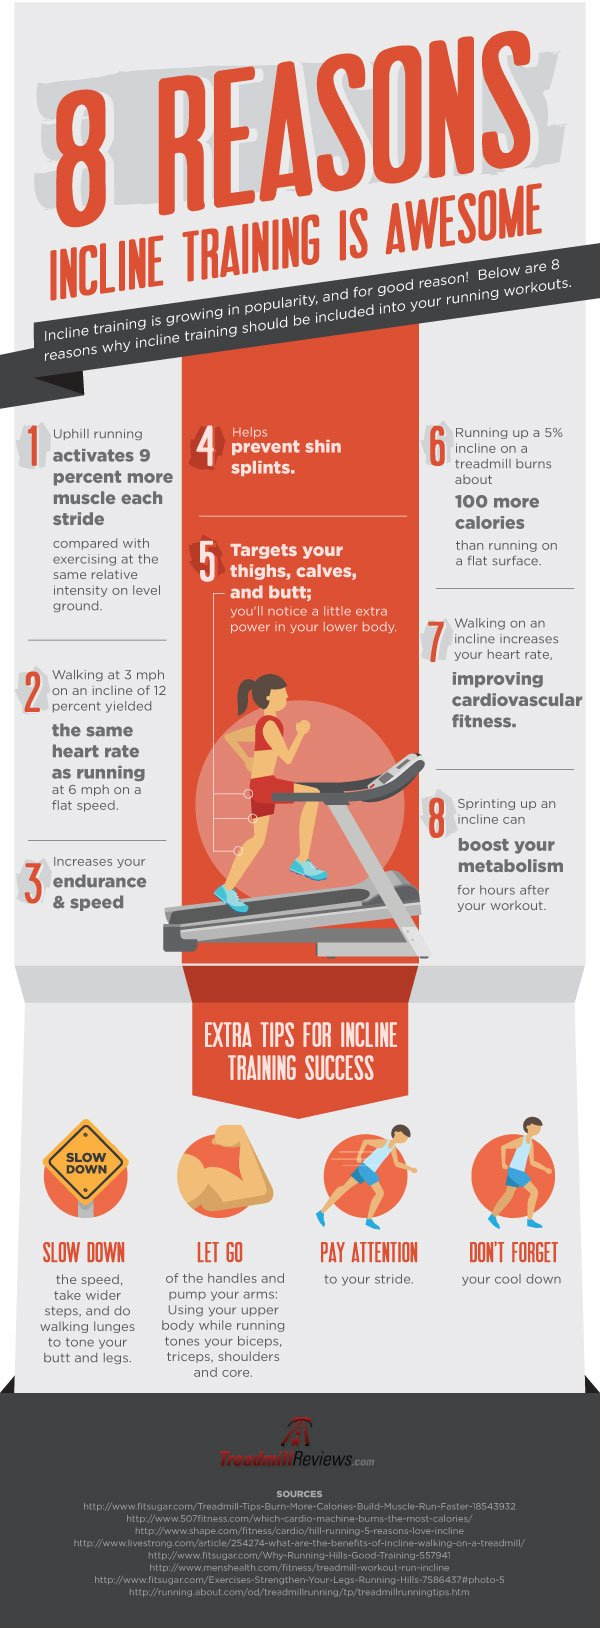 incline training treadmill review infographic